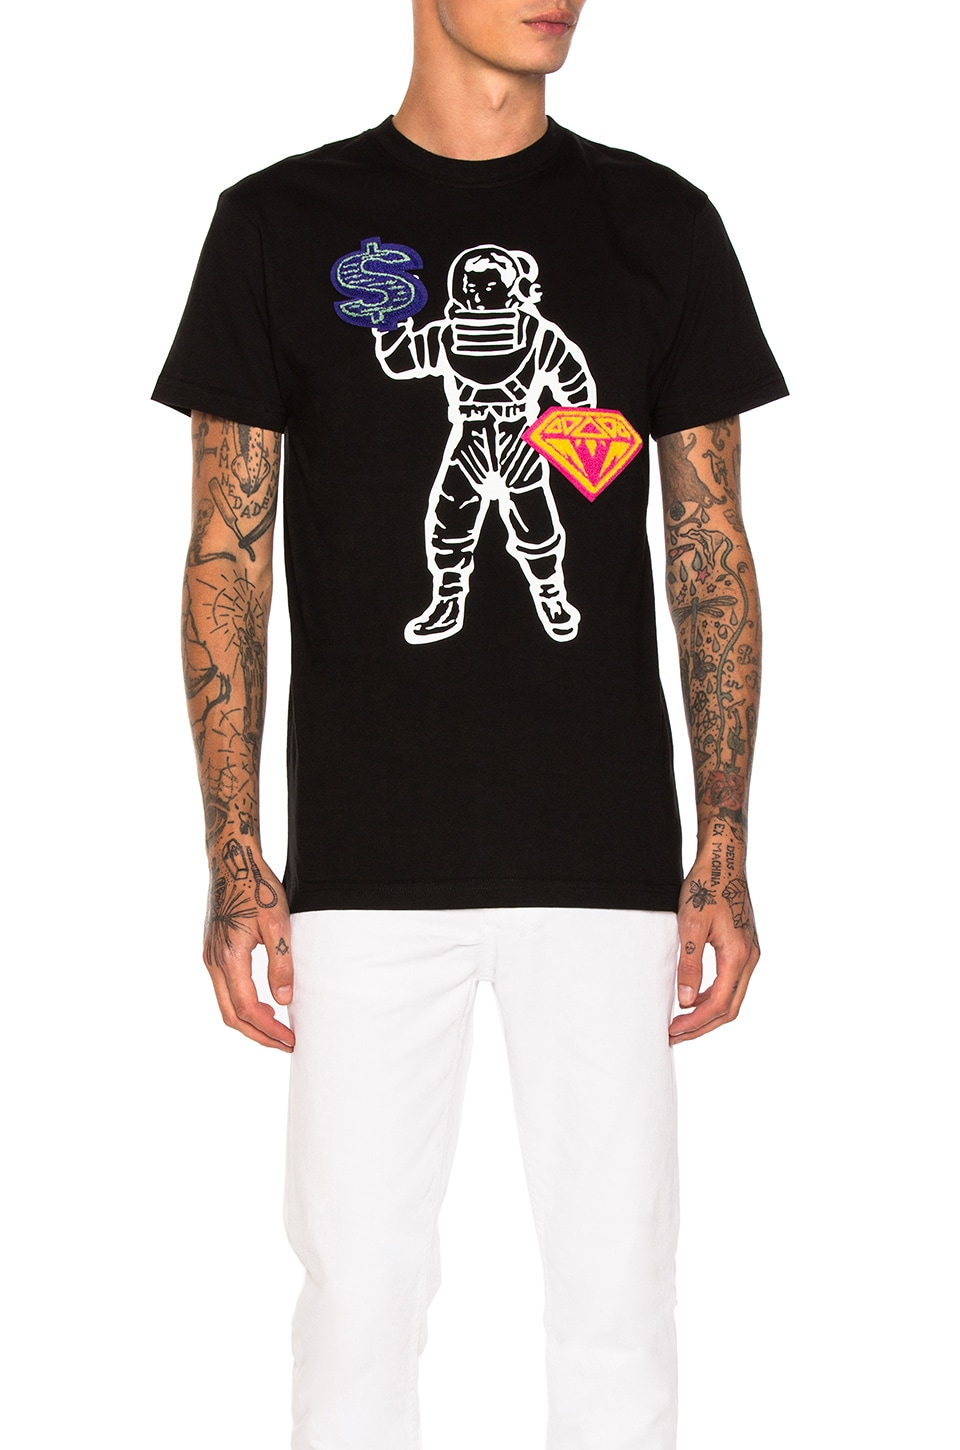 Photo of Sign Language Tee by Billionaire Boys Club men clothes